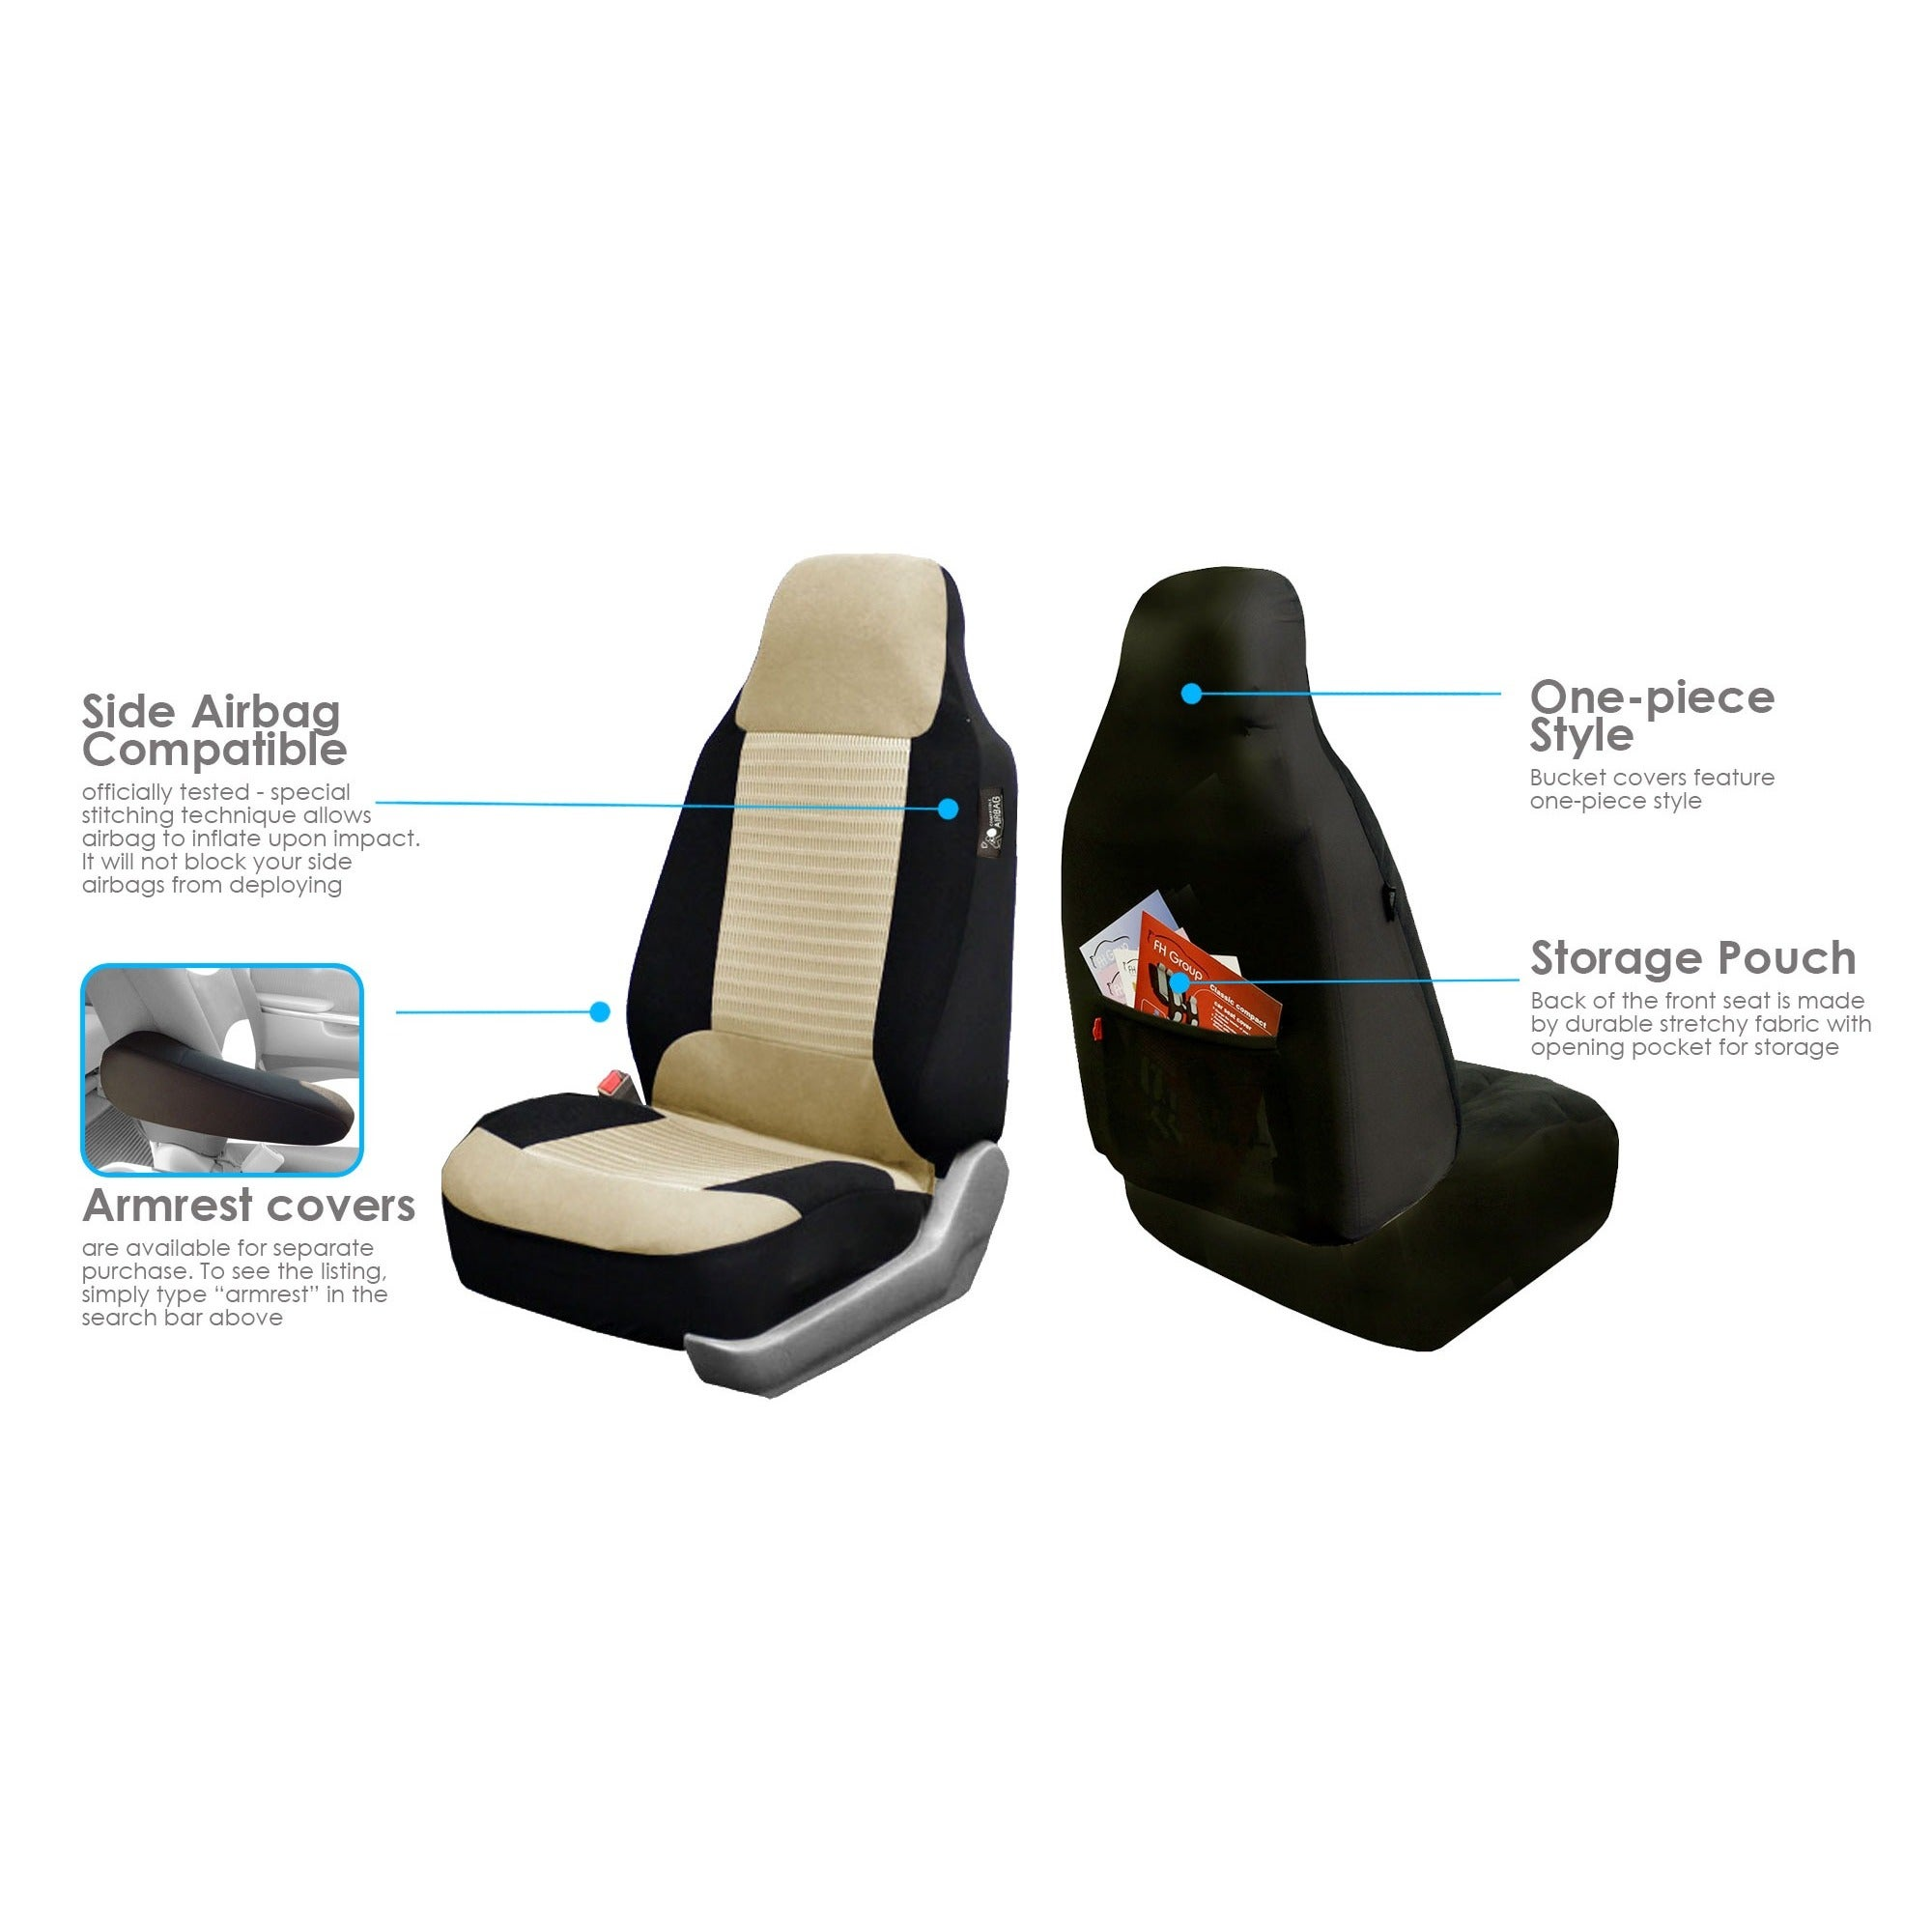 Groovy Fh Group Pair Bucket Seat Covers Airbag Compatible Unemploymentrelief Wooden Chair Designs For Living Room Unemploymentrelieforg